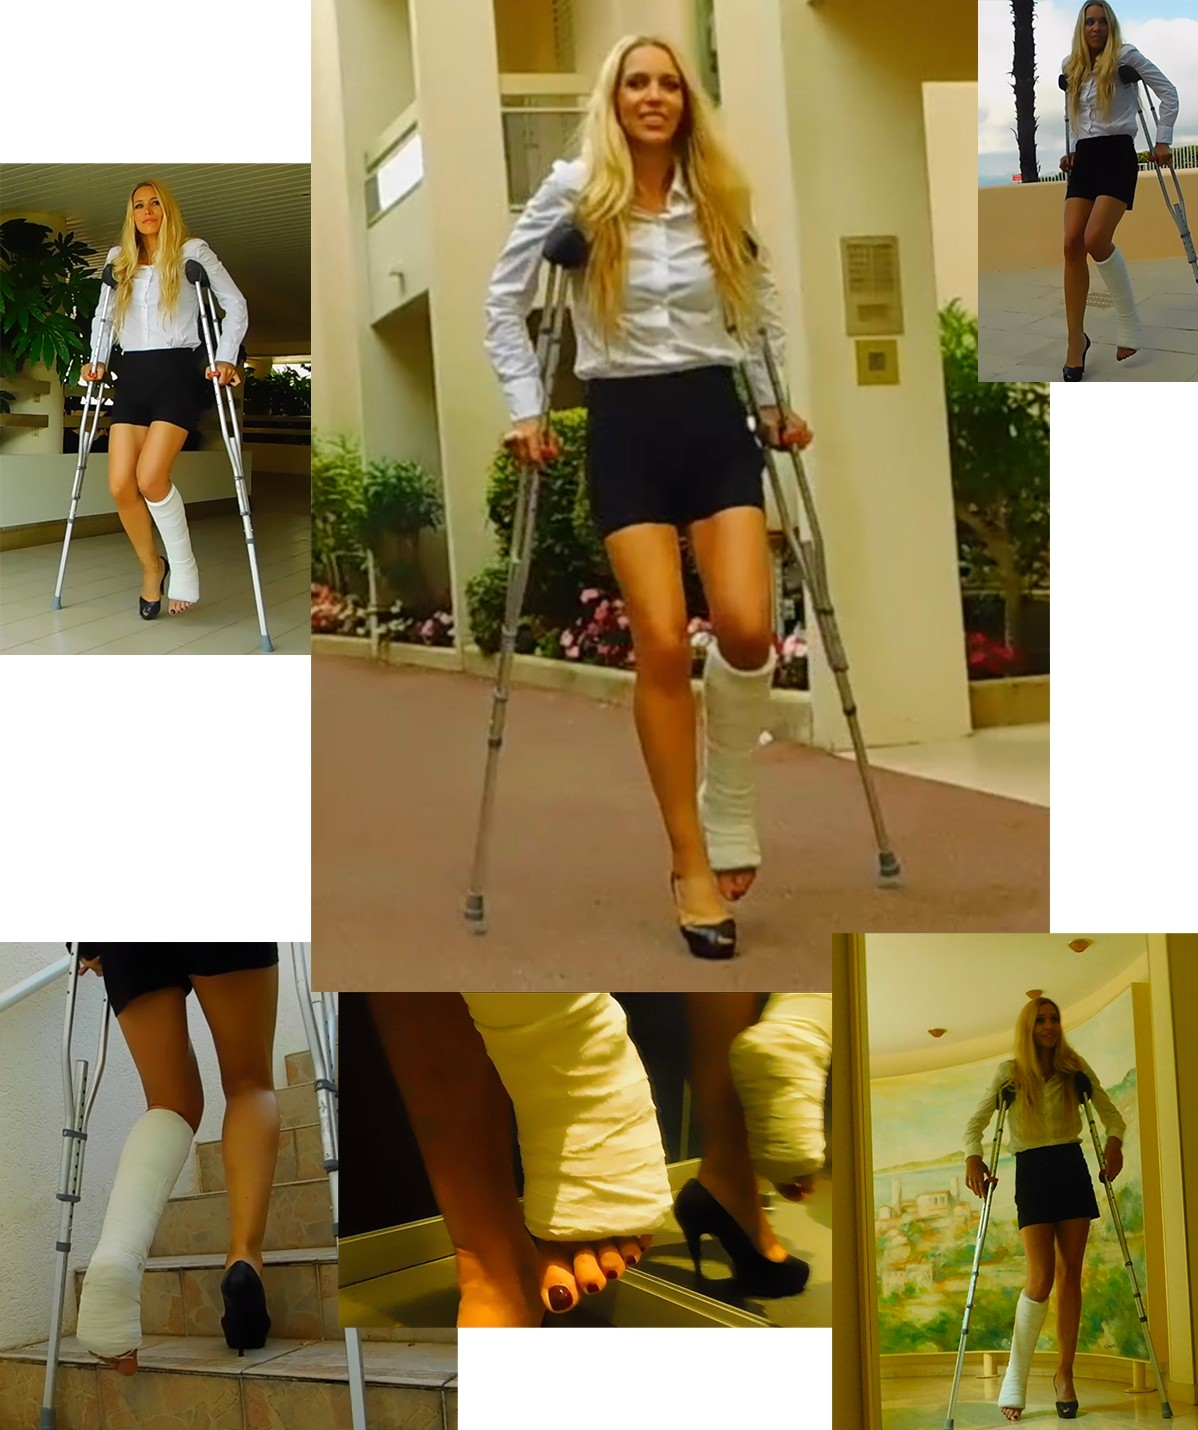 Castlinda SLC - Jolie Modling - crutching to the swimming pool. Linda leaves house to go to the swimming pool, taking the lift and stairs with crutches, arriving at the pool.